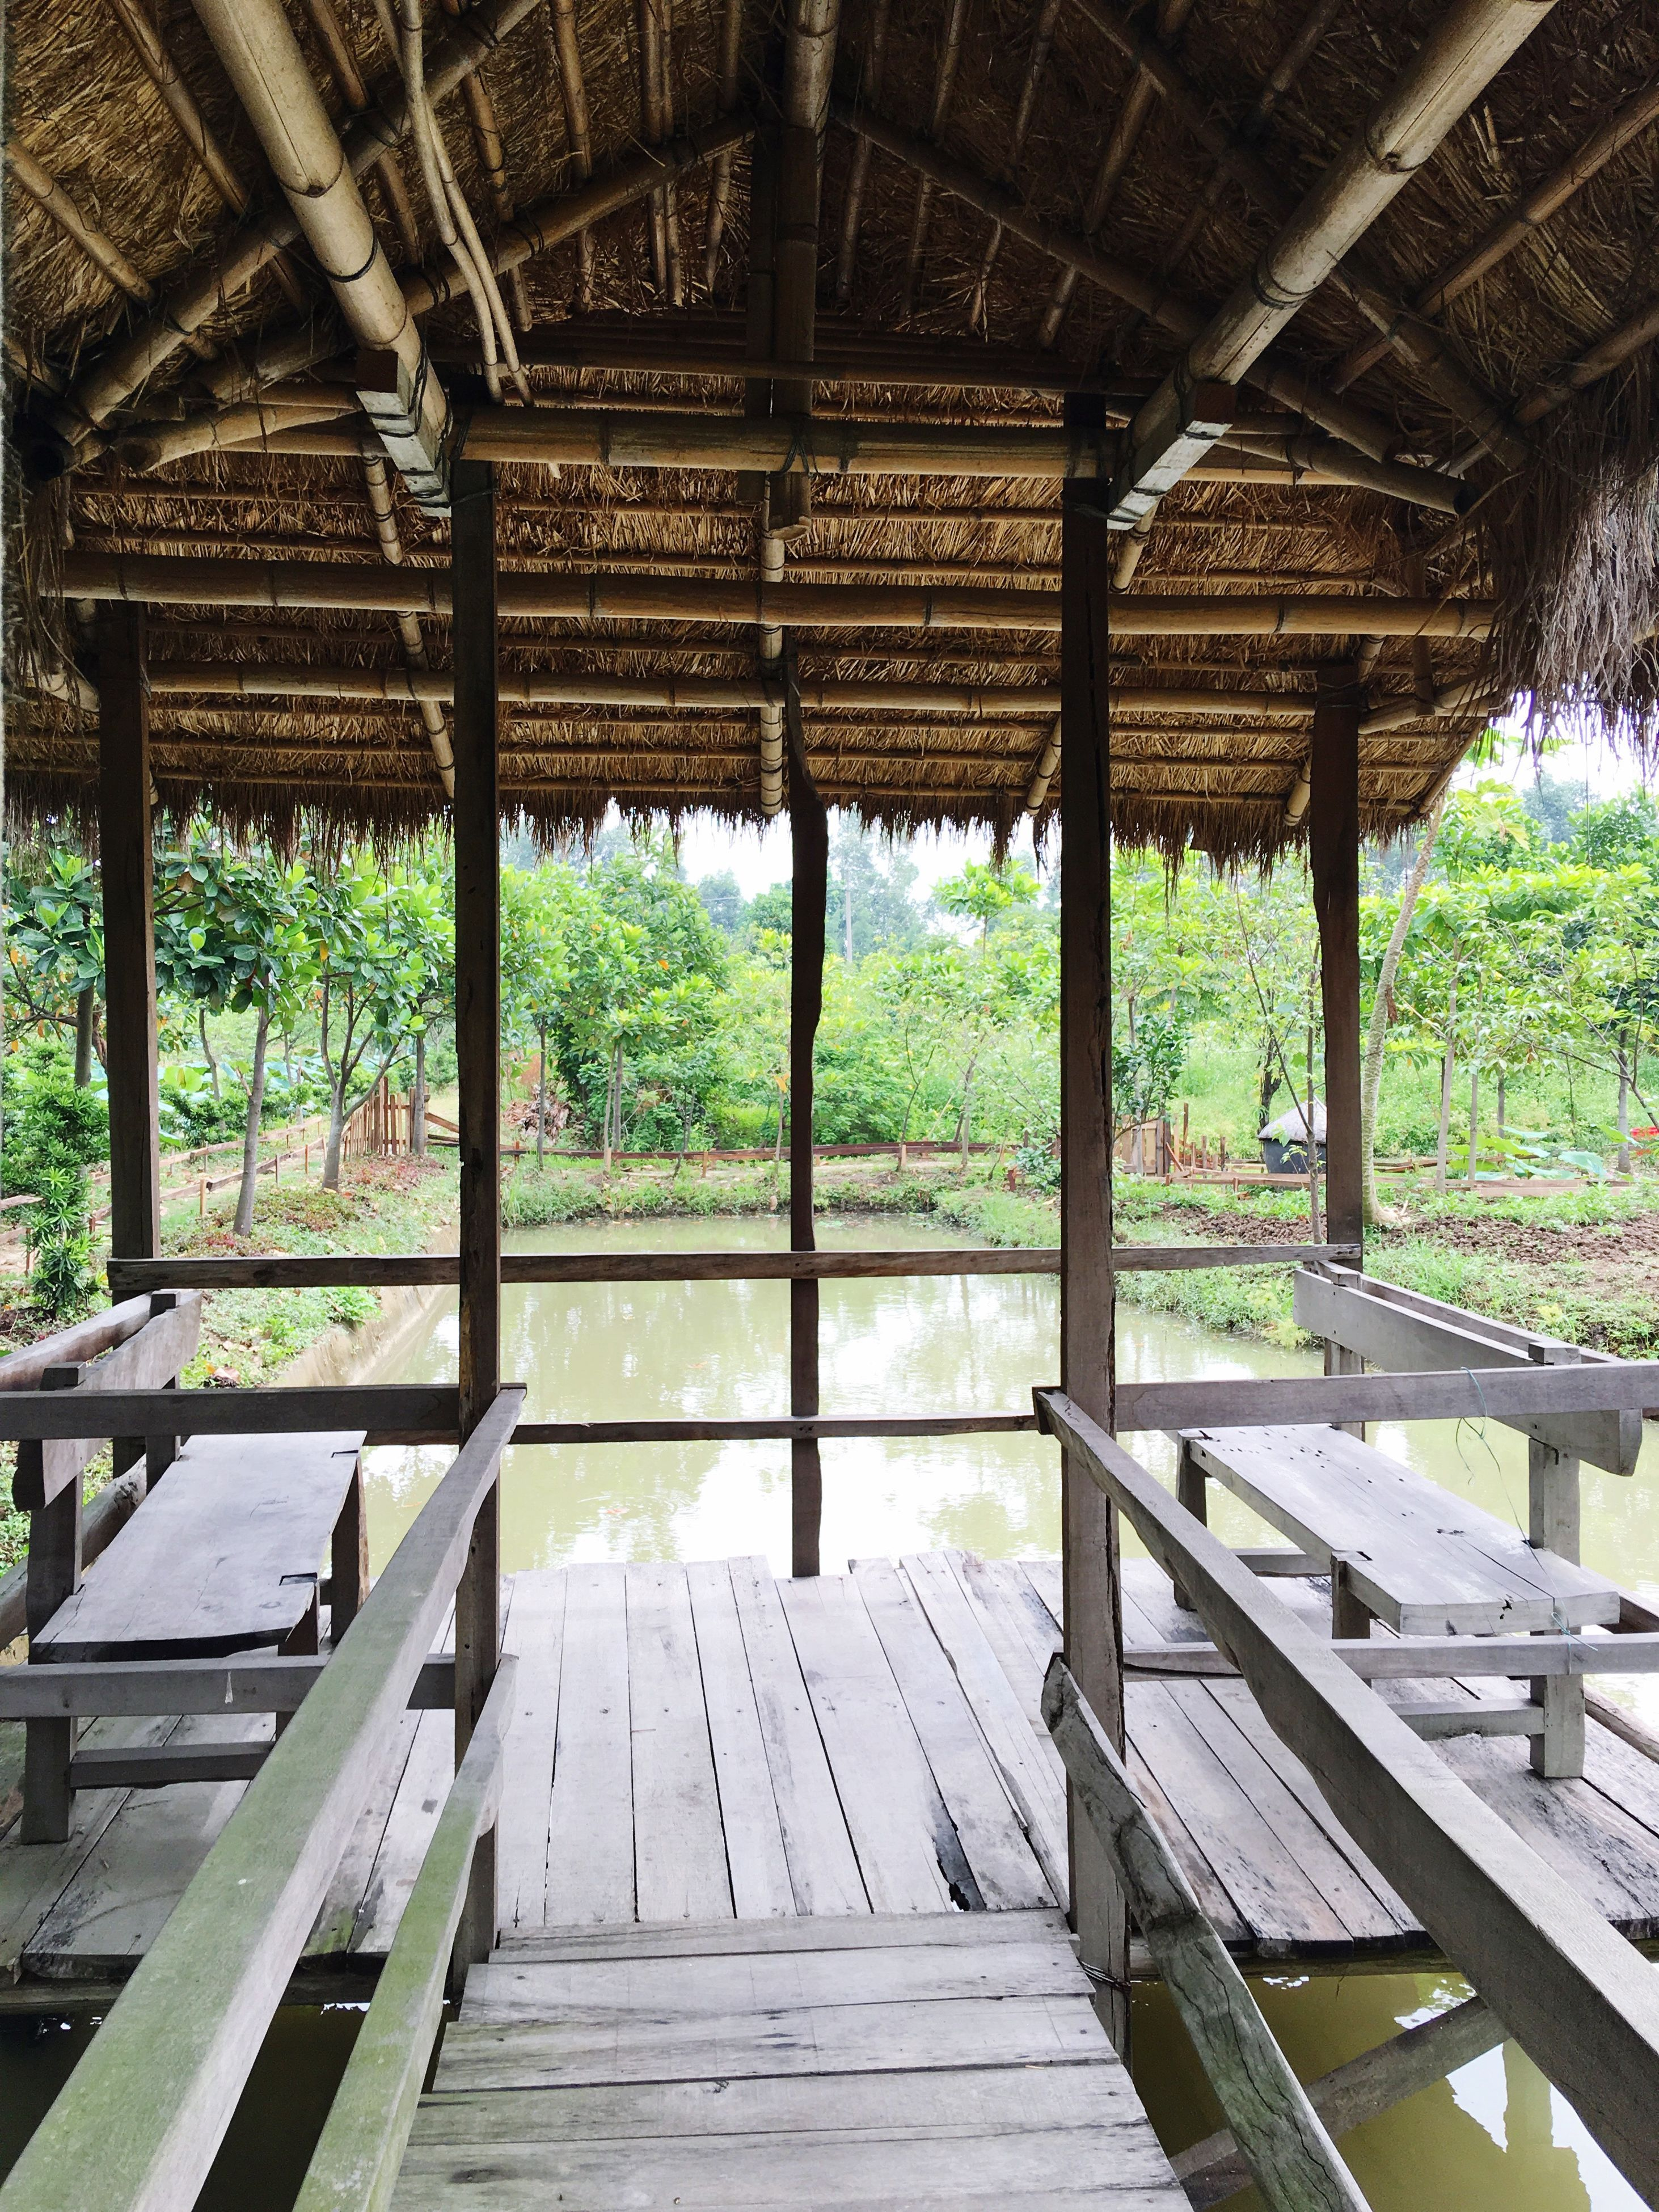 built structure, architecture, ceiling, bench, water, bridge - man made structure, pier, gazebo, tranquility, boardwalk, growth, architectural column, day, wood paneling, the way forward, no people, green color, tranquil scene, majestic